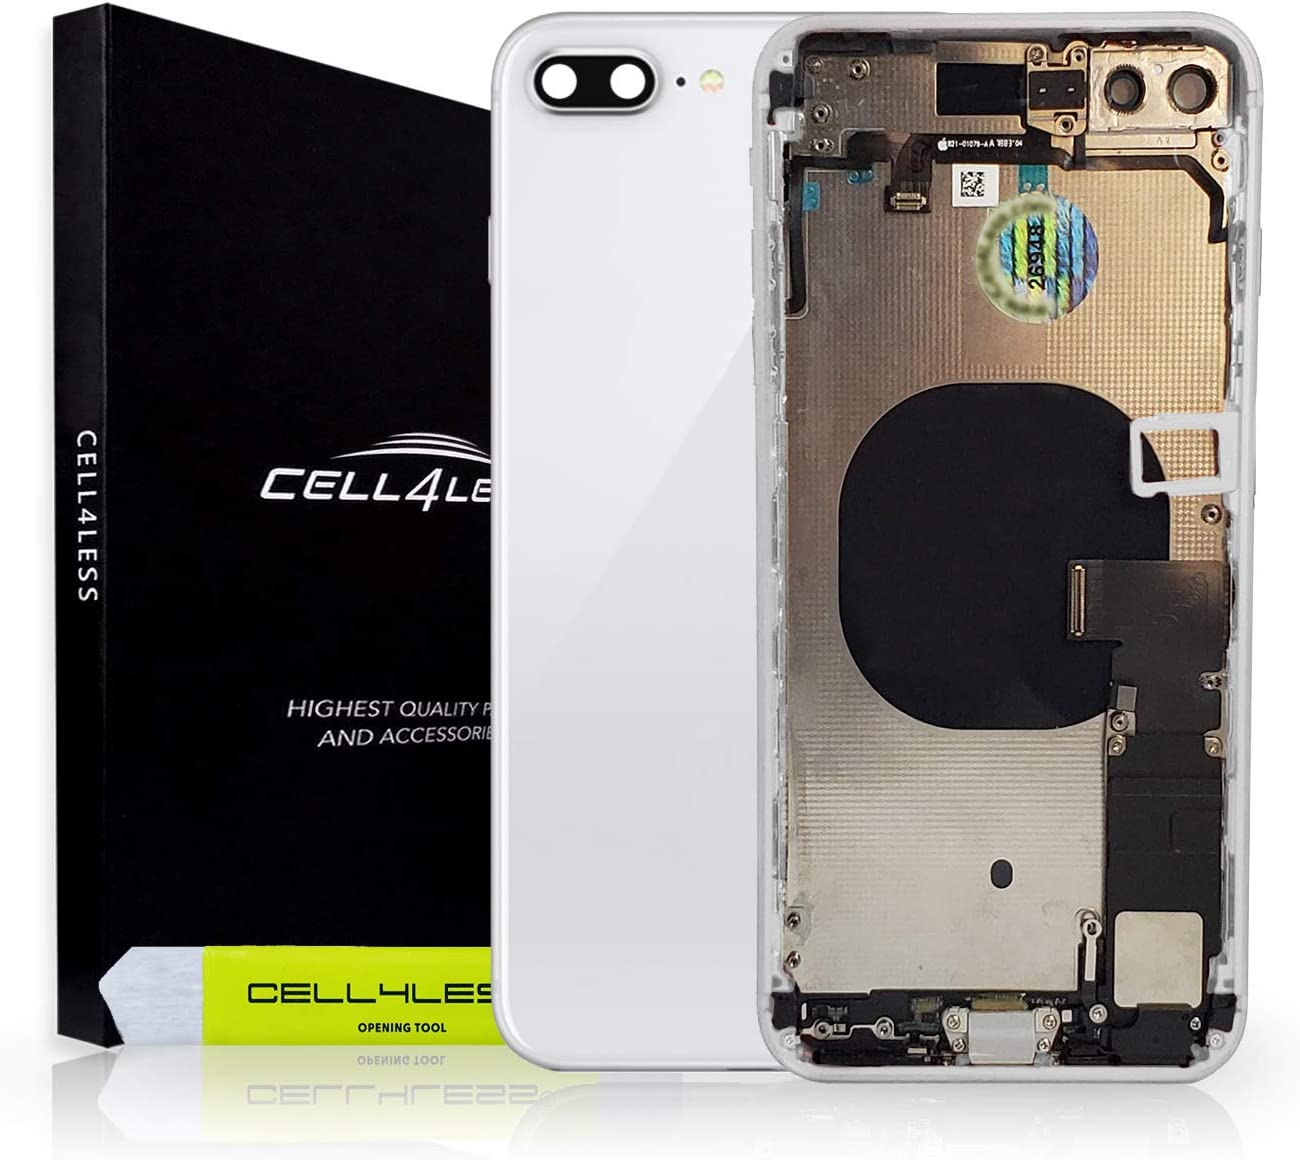 CELL4LESS Back Housing Assembly Metal MidFrame w/Major Components Pre-Installed Including Buttons for iPhone 8 Plus (White)